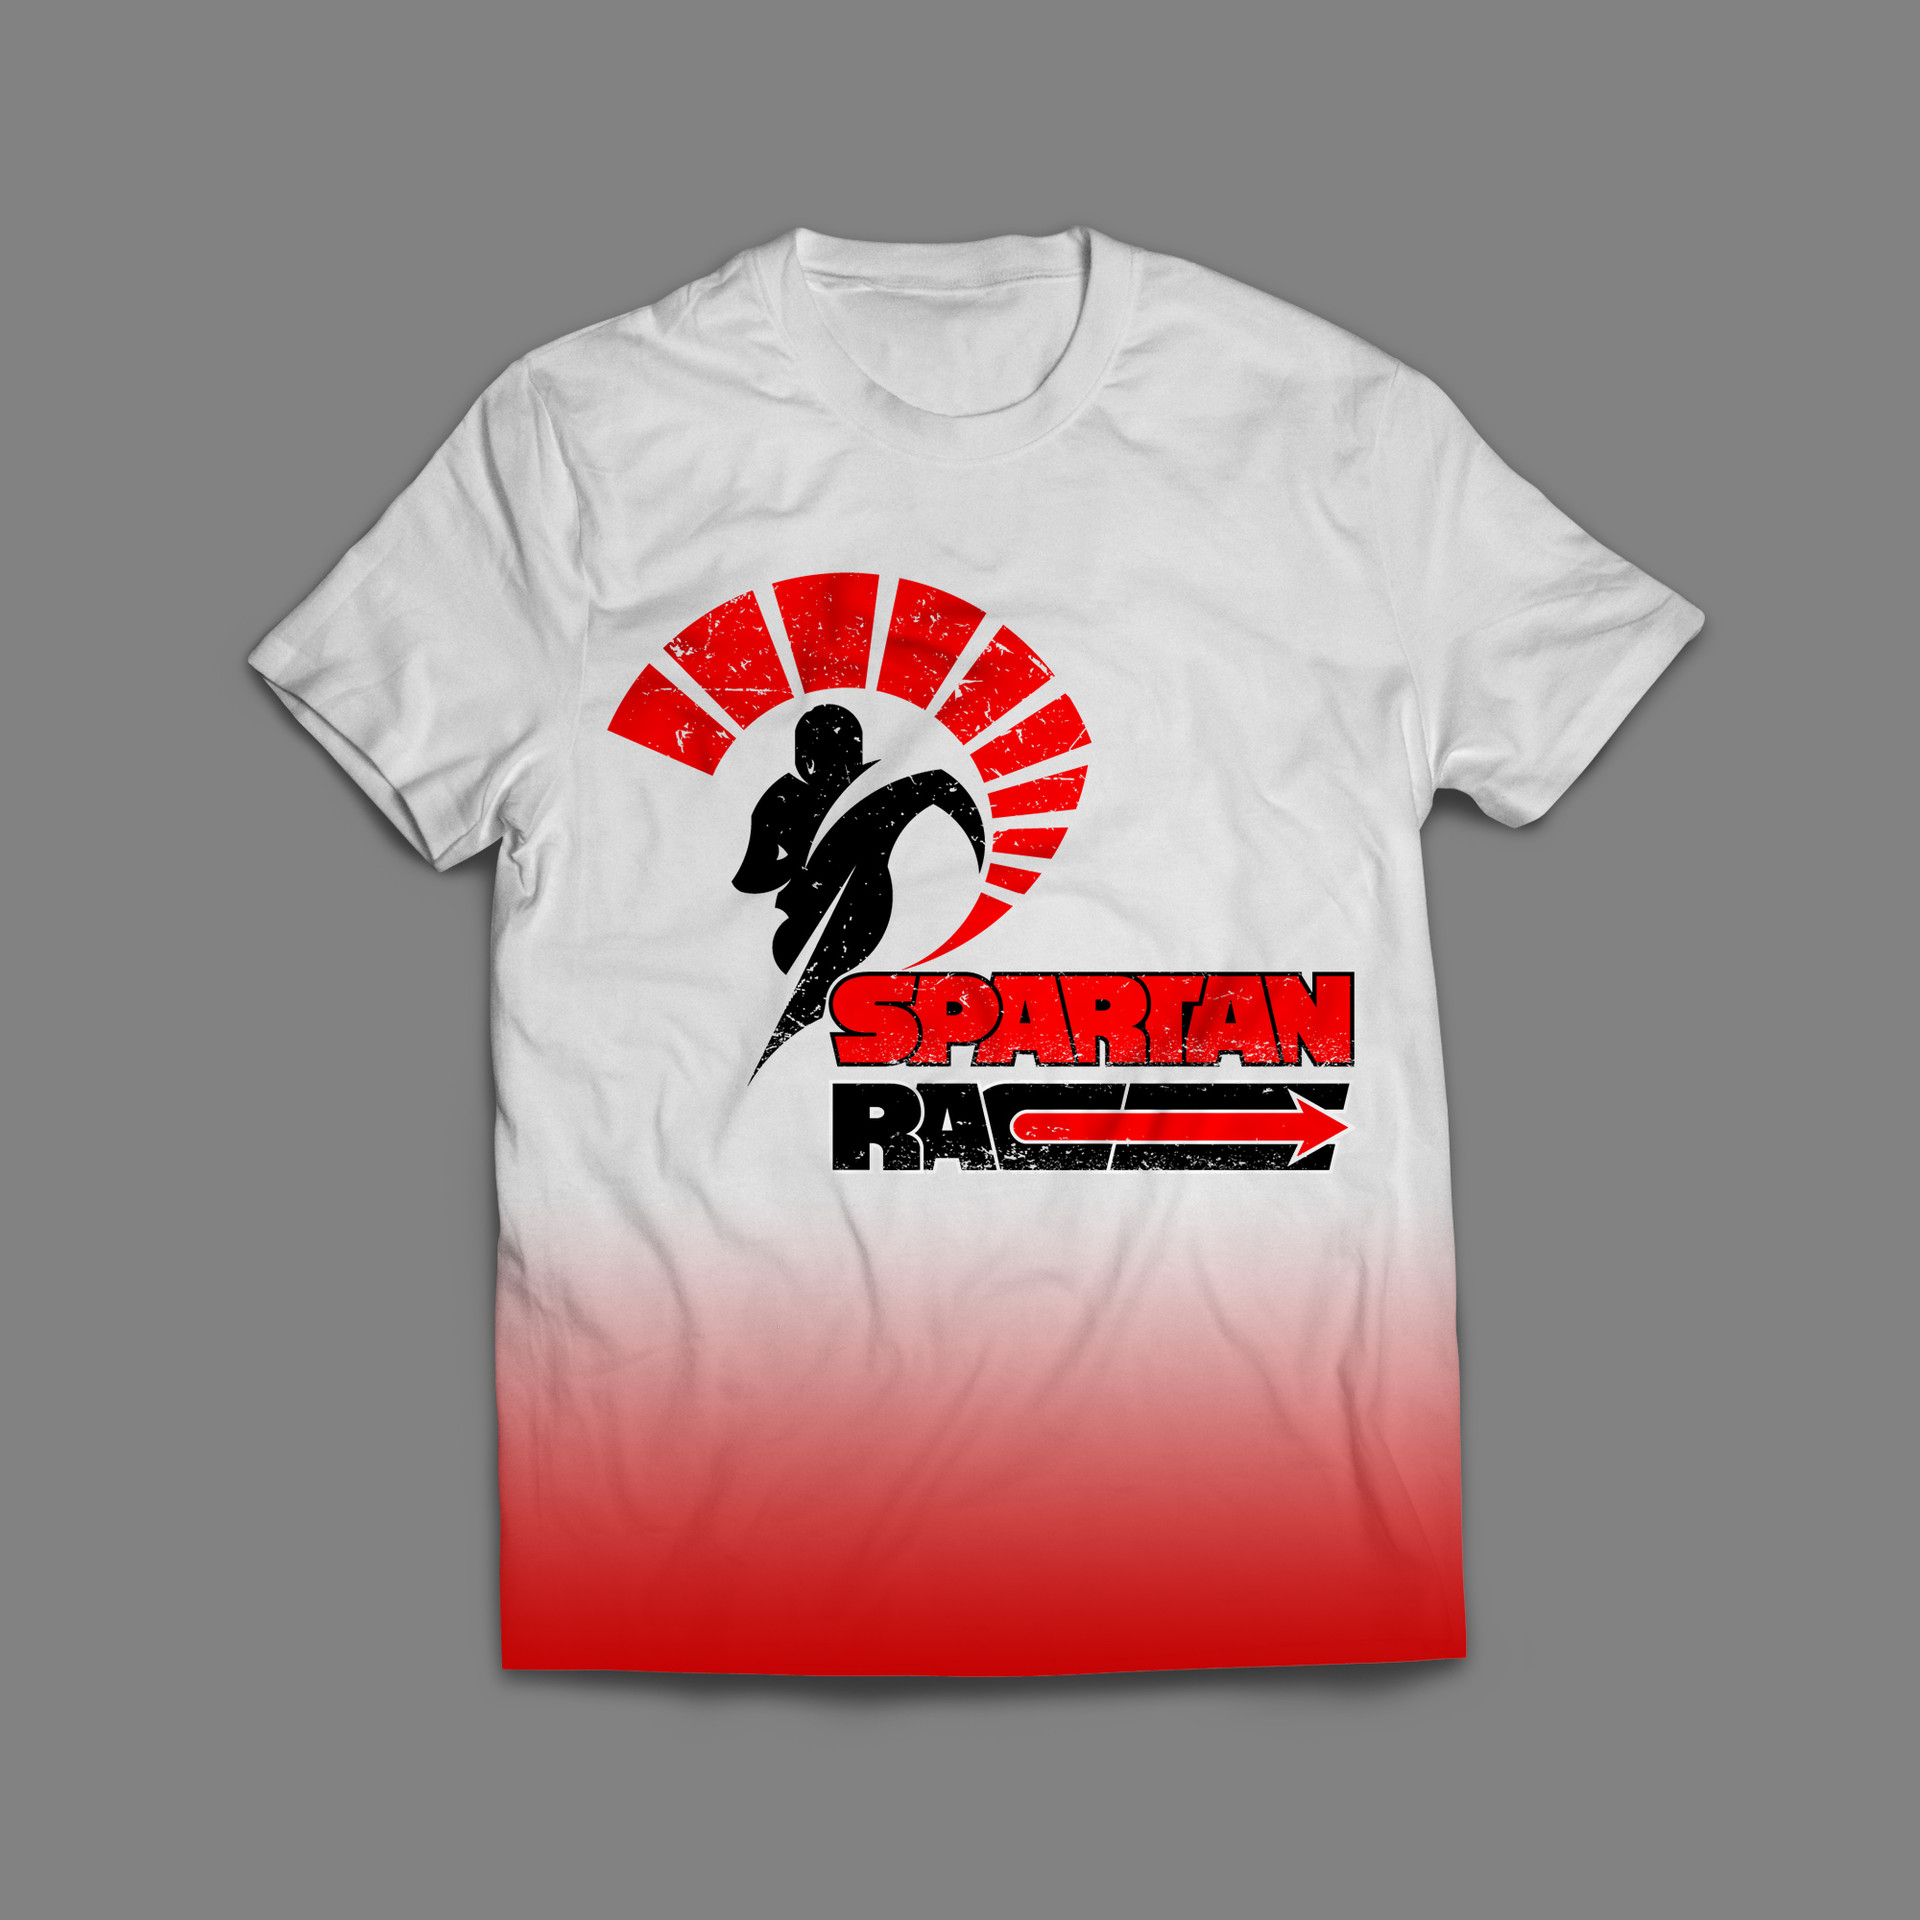 Richard t white jr spartanrace tshirtmockup 02